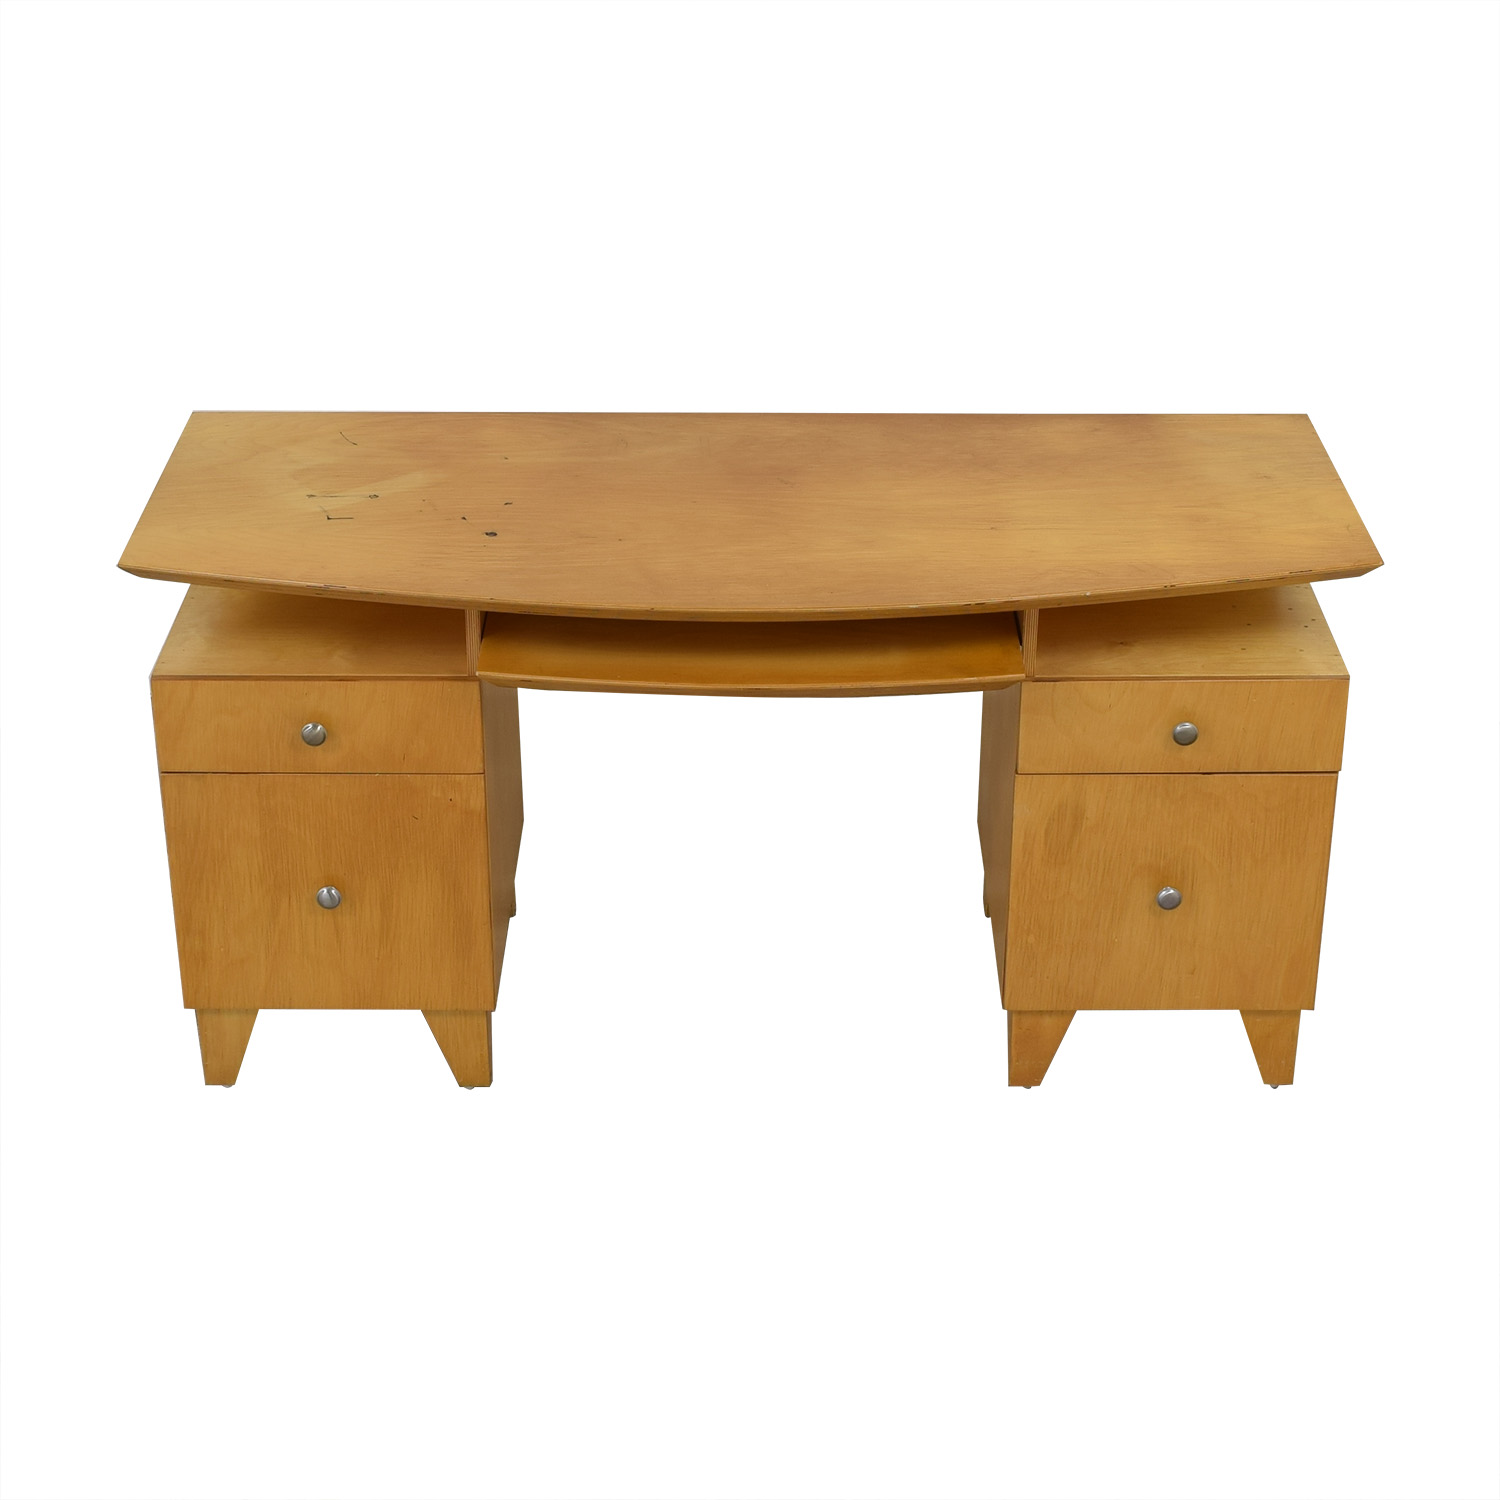 Modernist Desk with Pull-Out Keyboard Tray nj